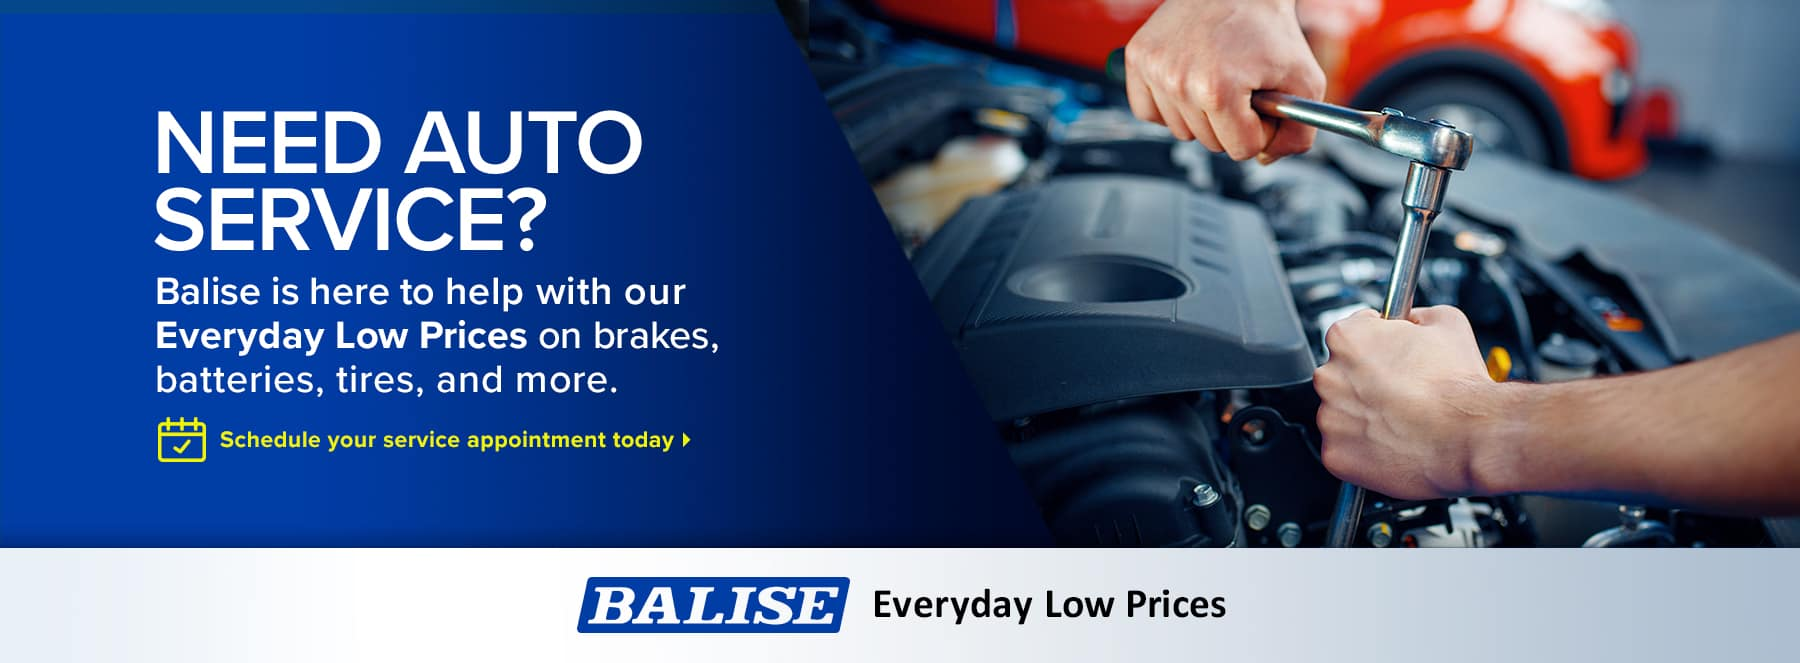 Balise Everyday Low Prices on Service